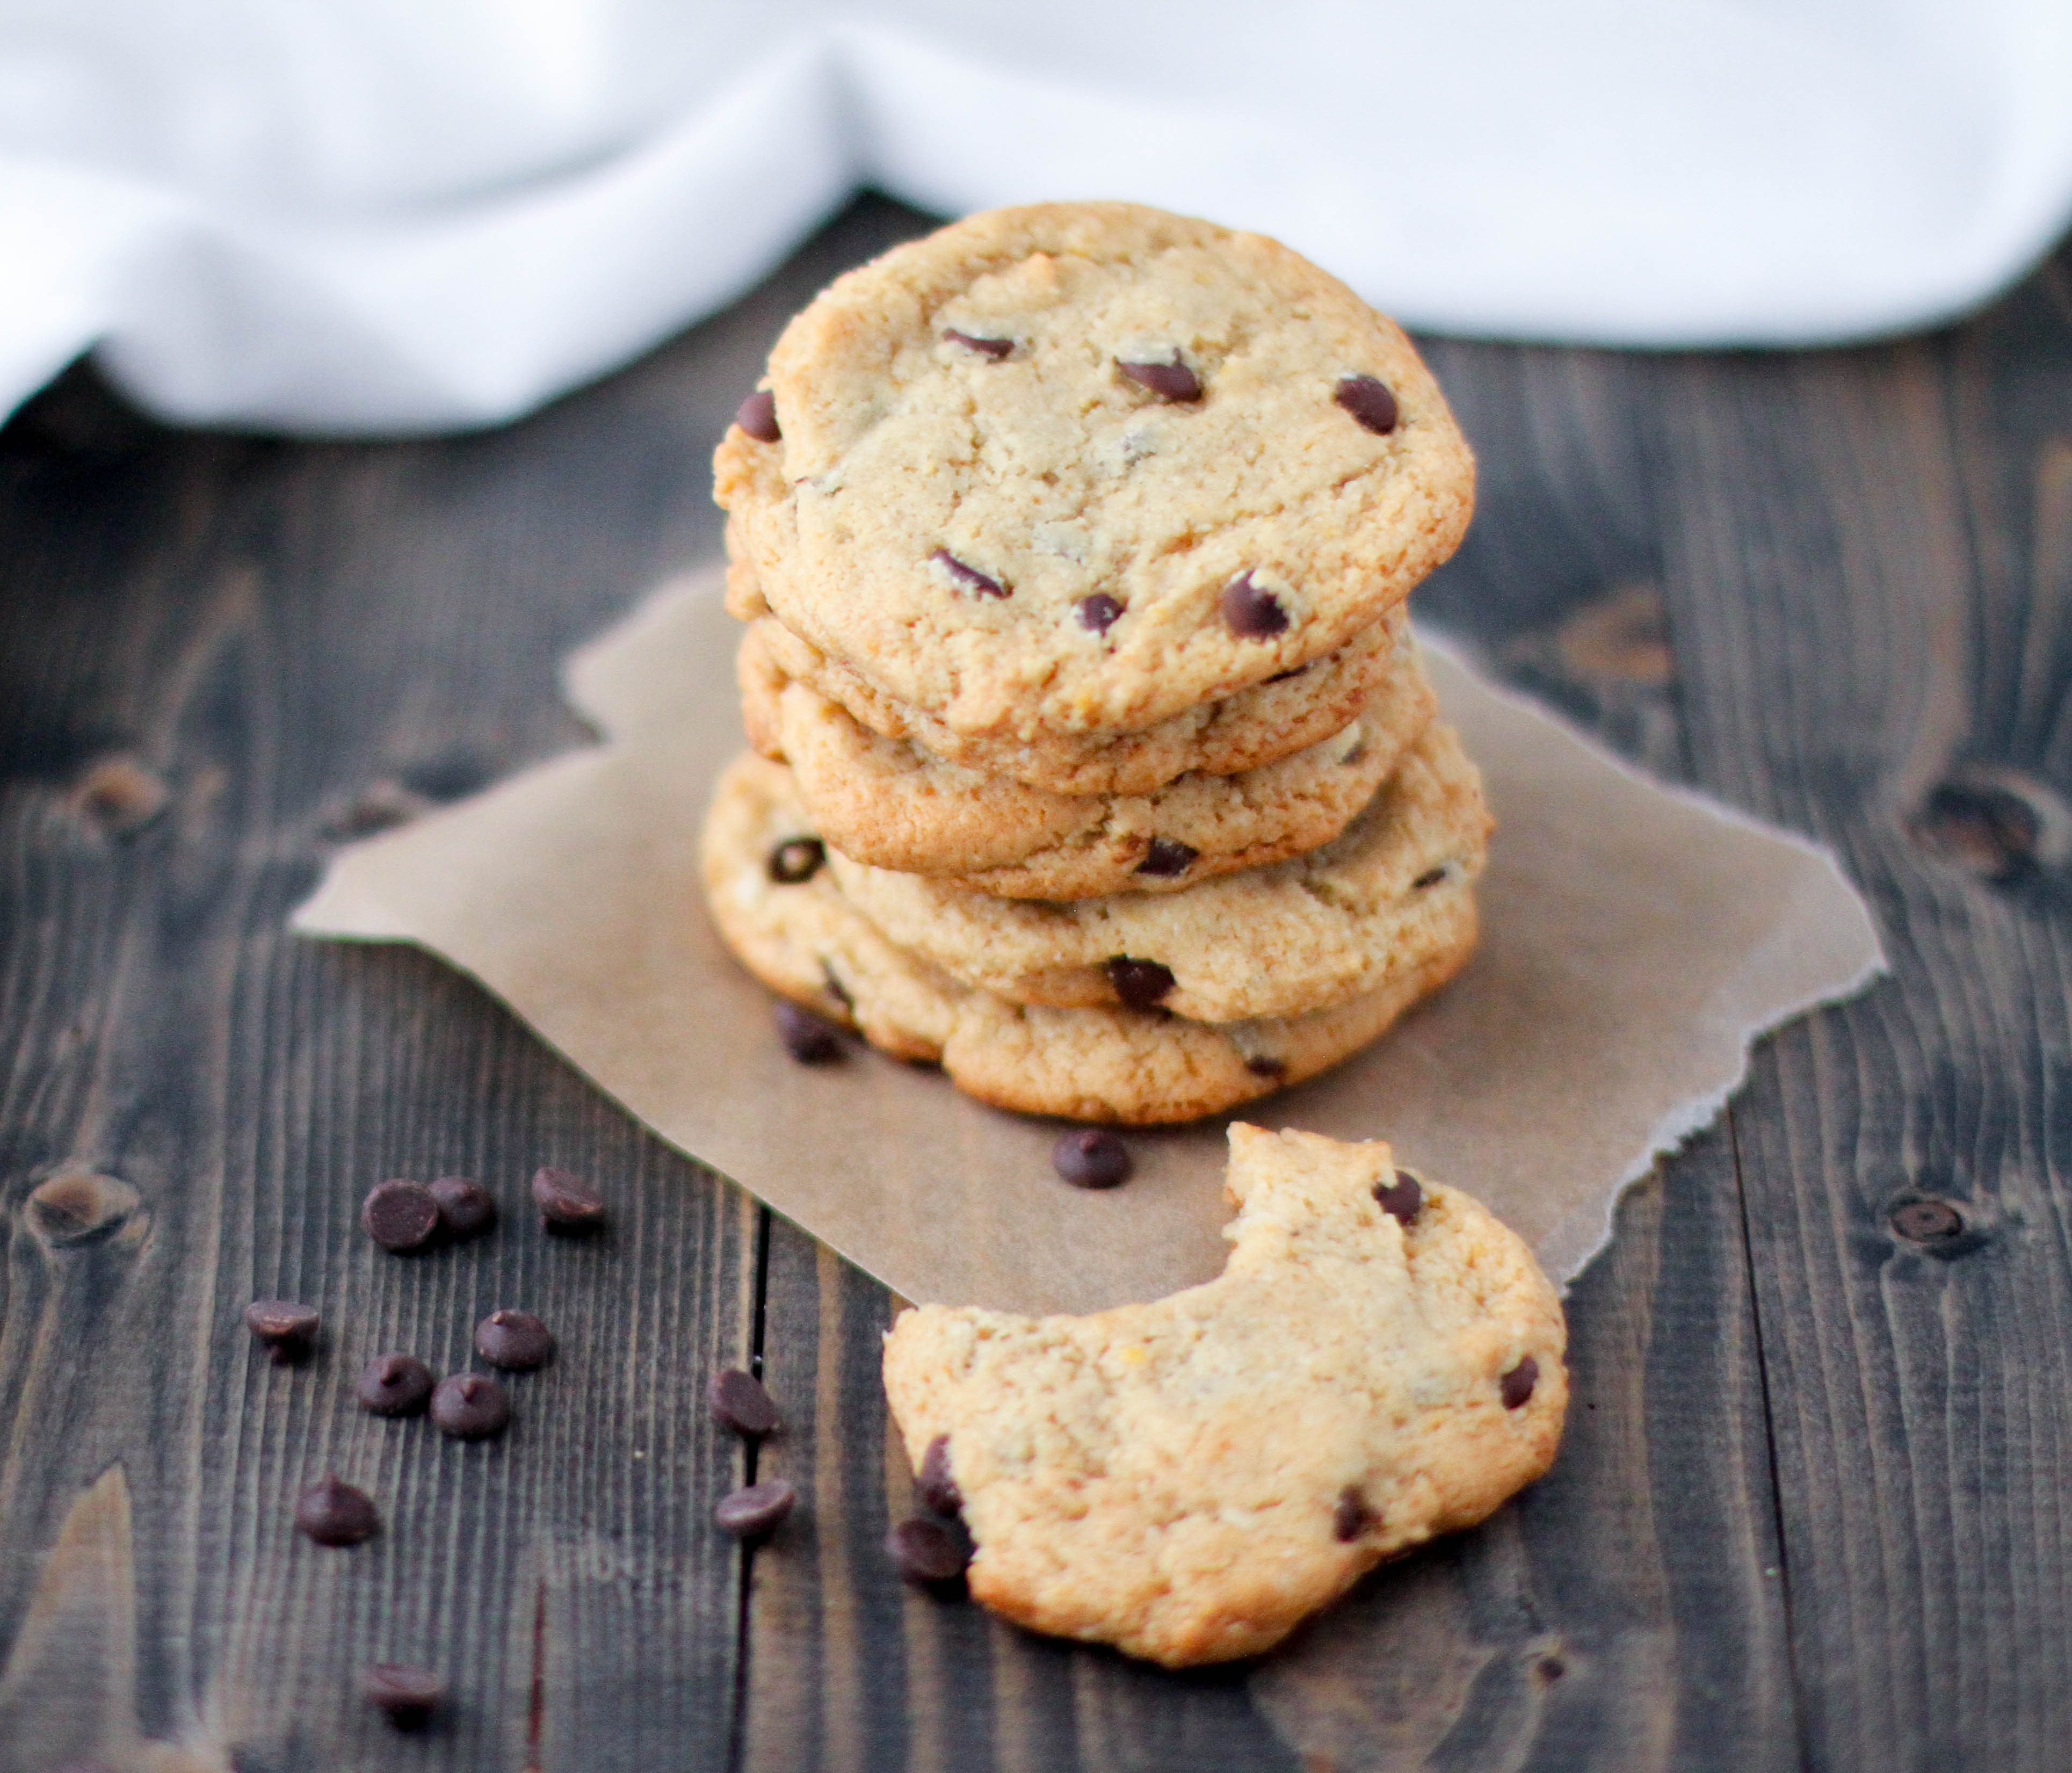 Coconut Contentment » Blog Archive » Best Ever Chocolate Chip Cookies